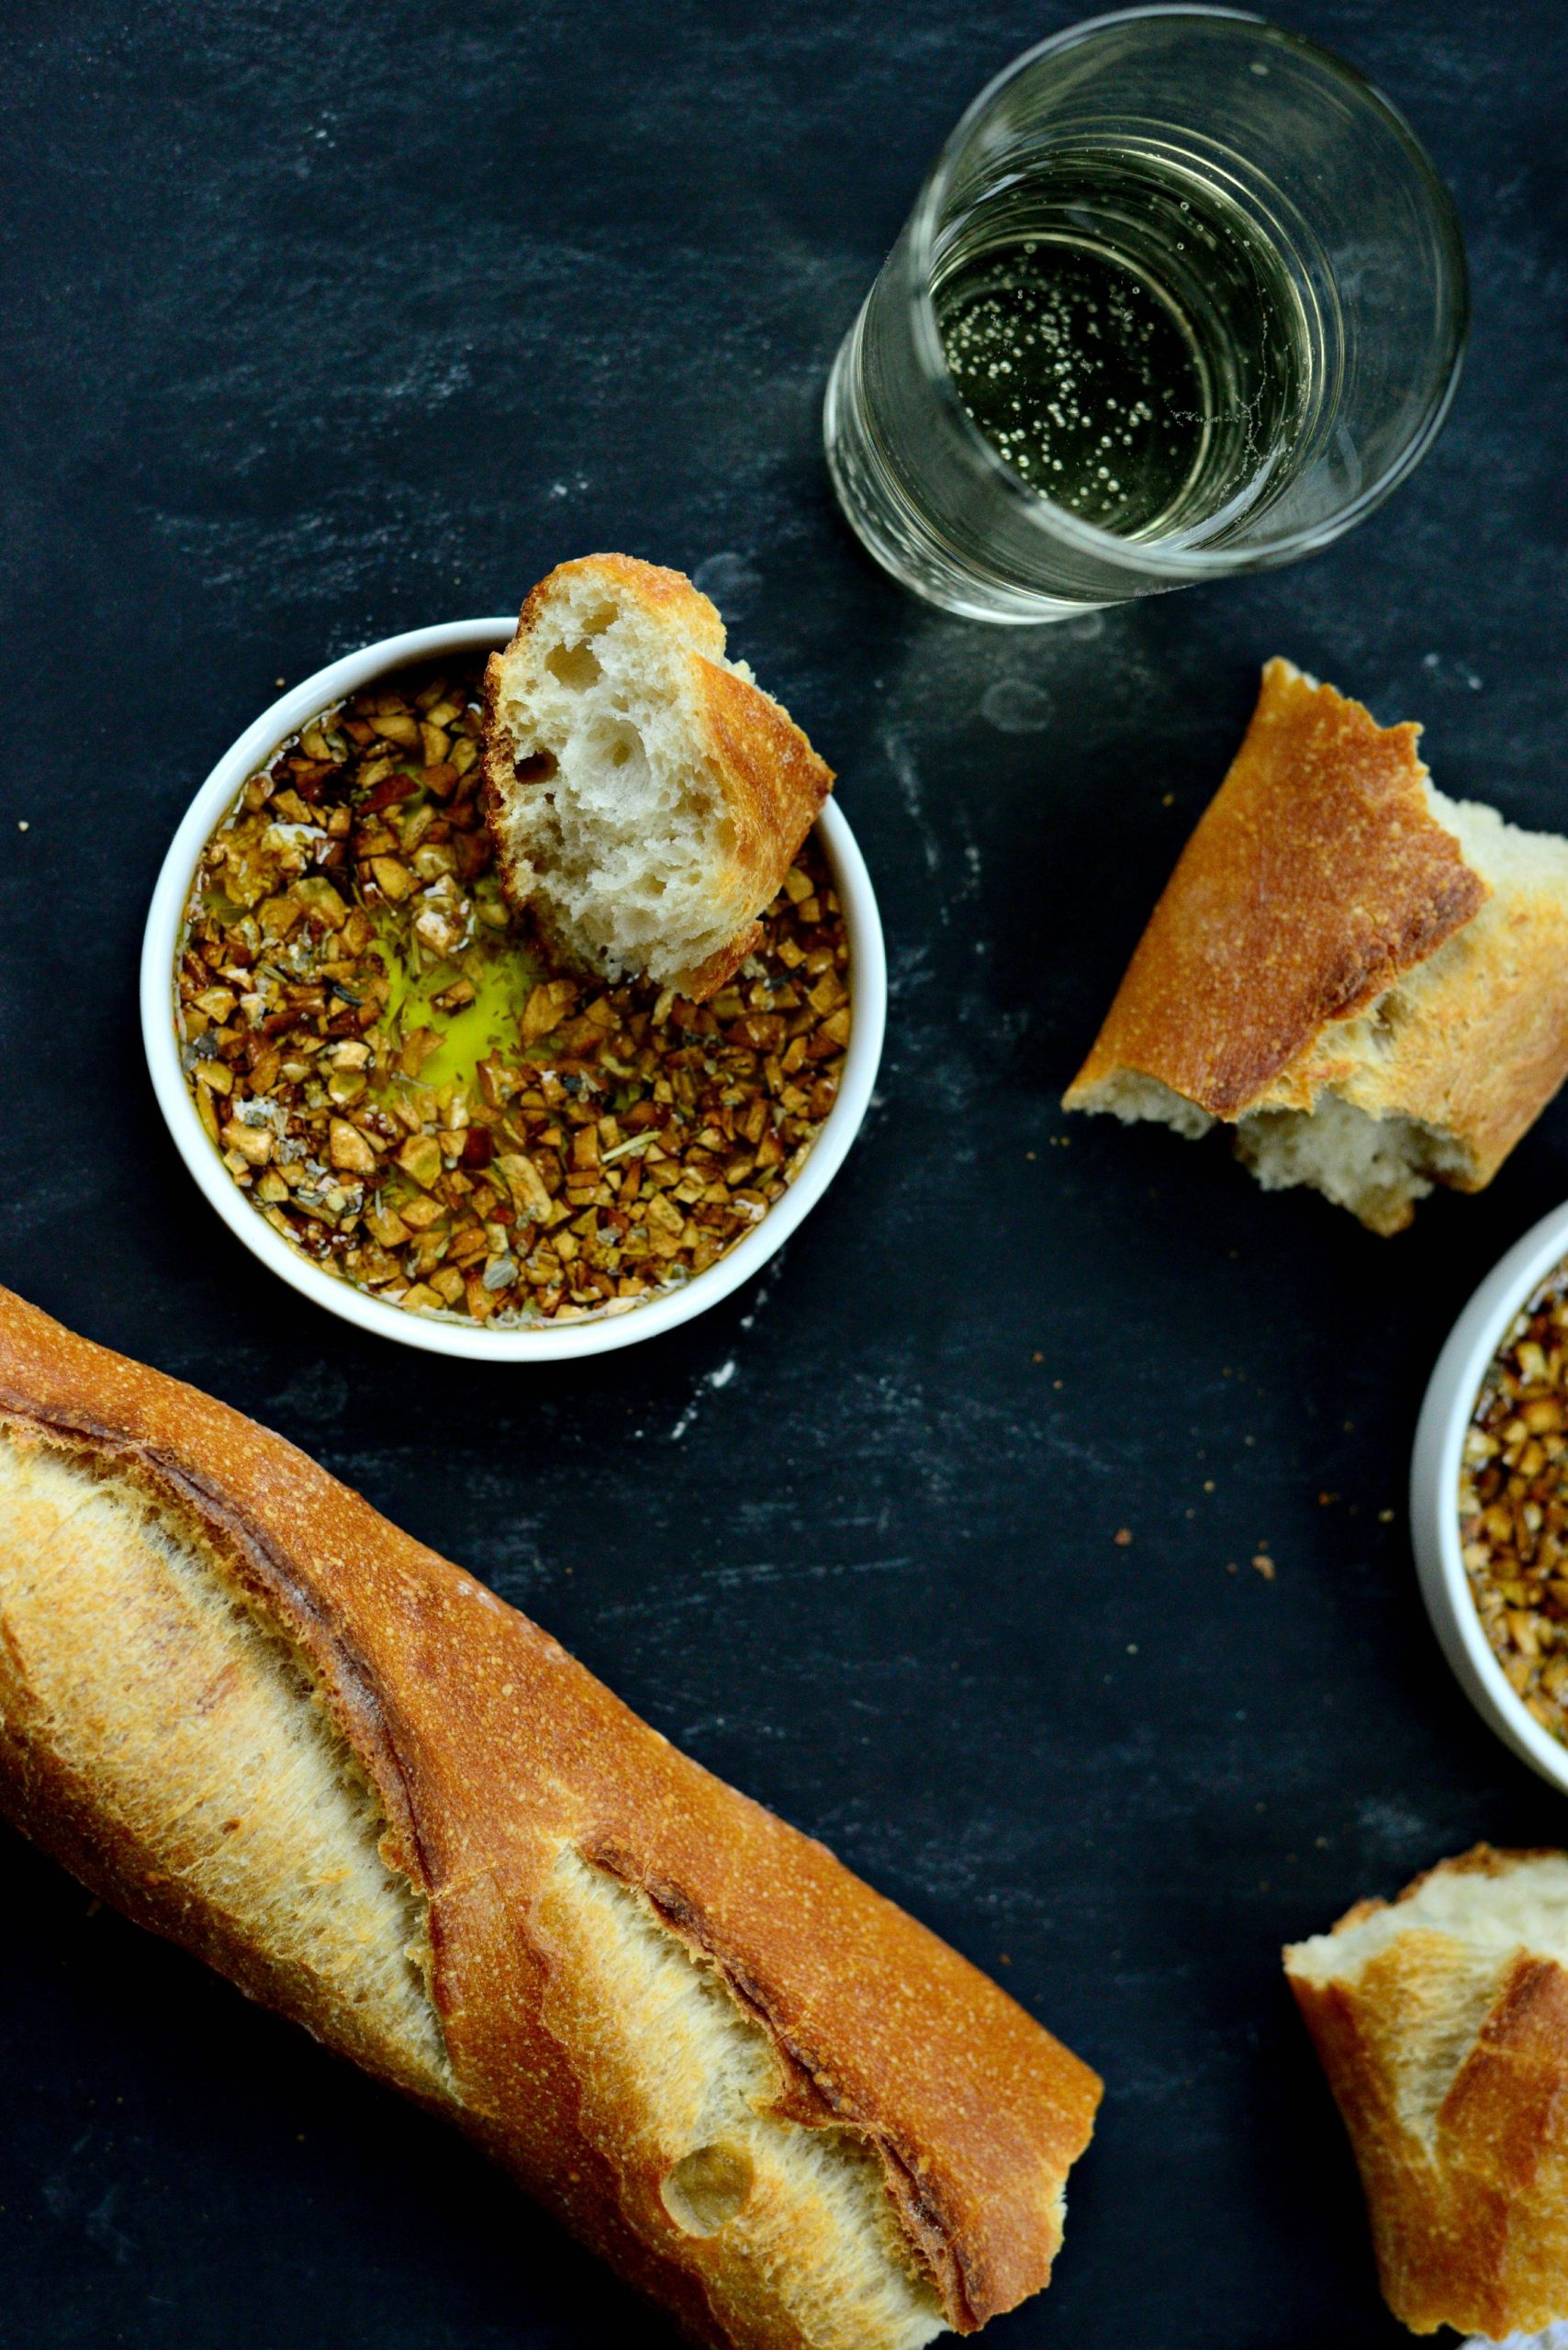 Toasted Garlic Olive Oil Bread Dip - Simply Scratch